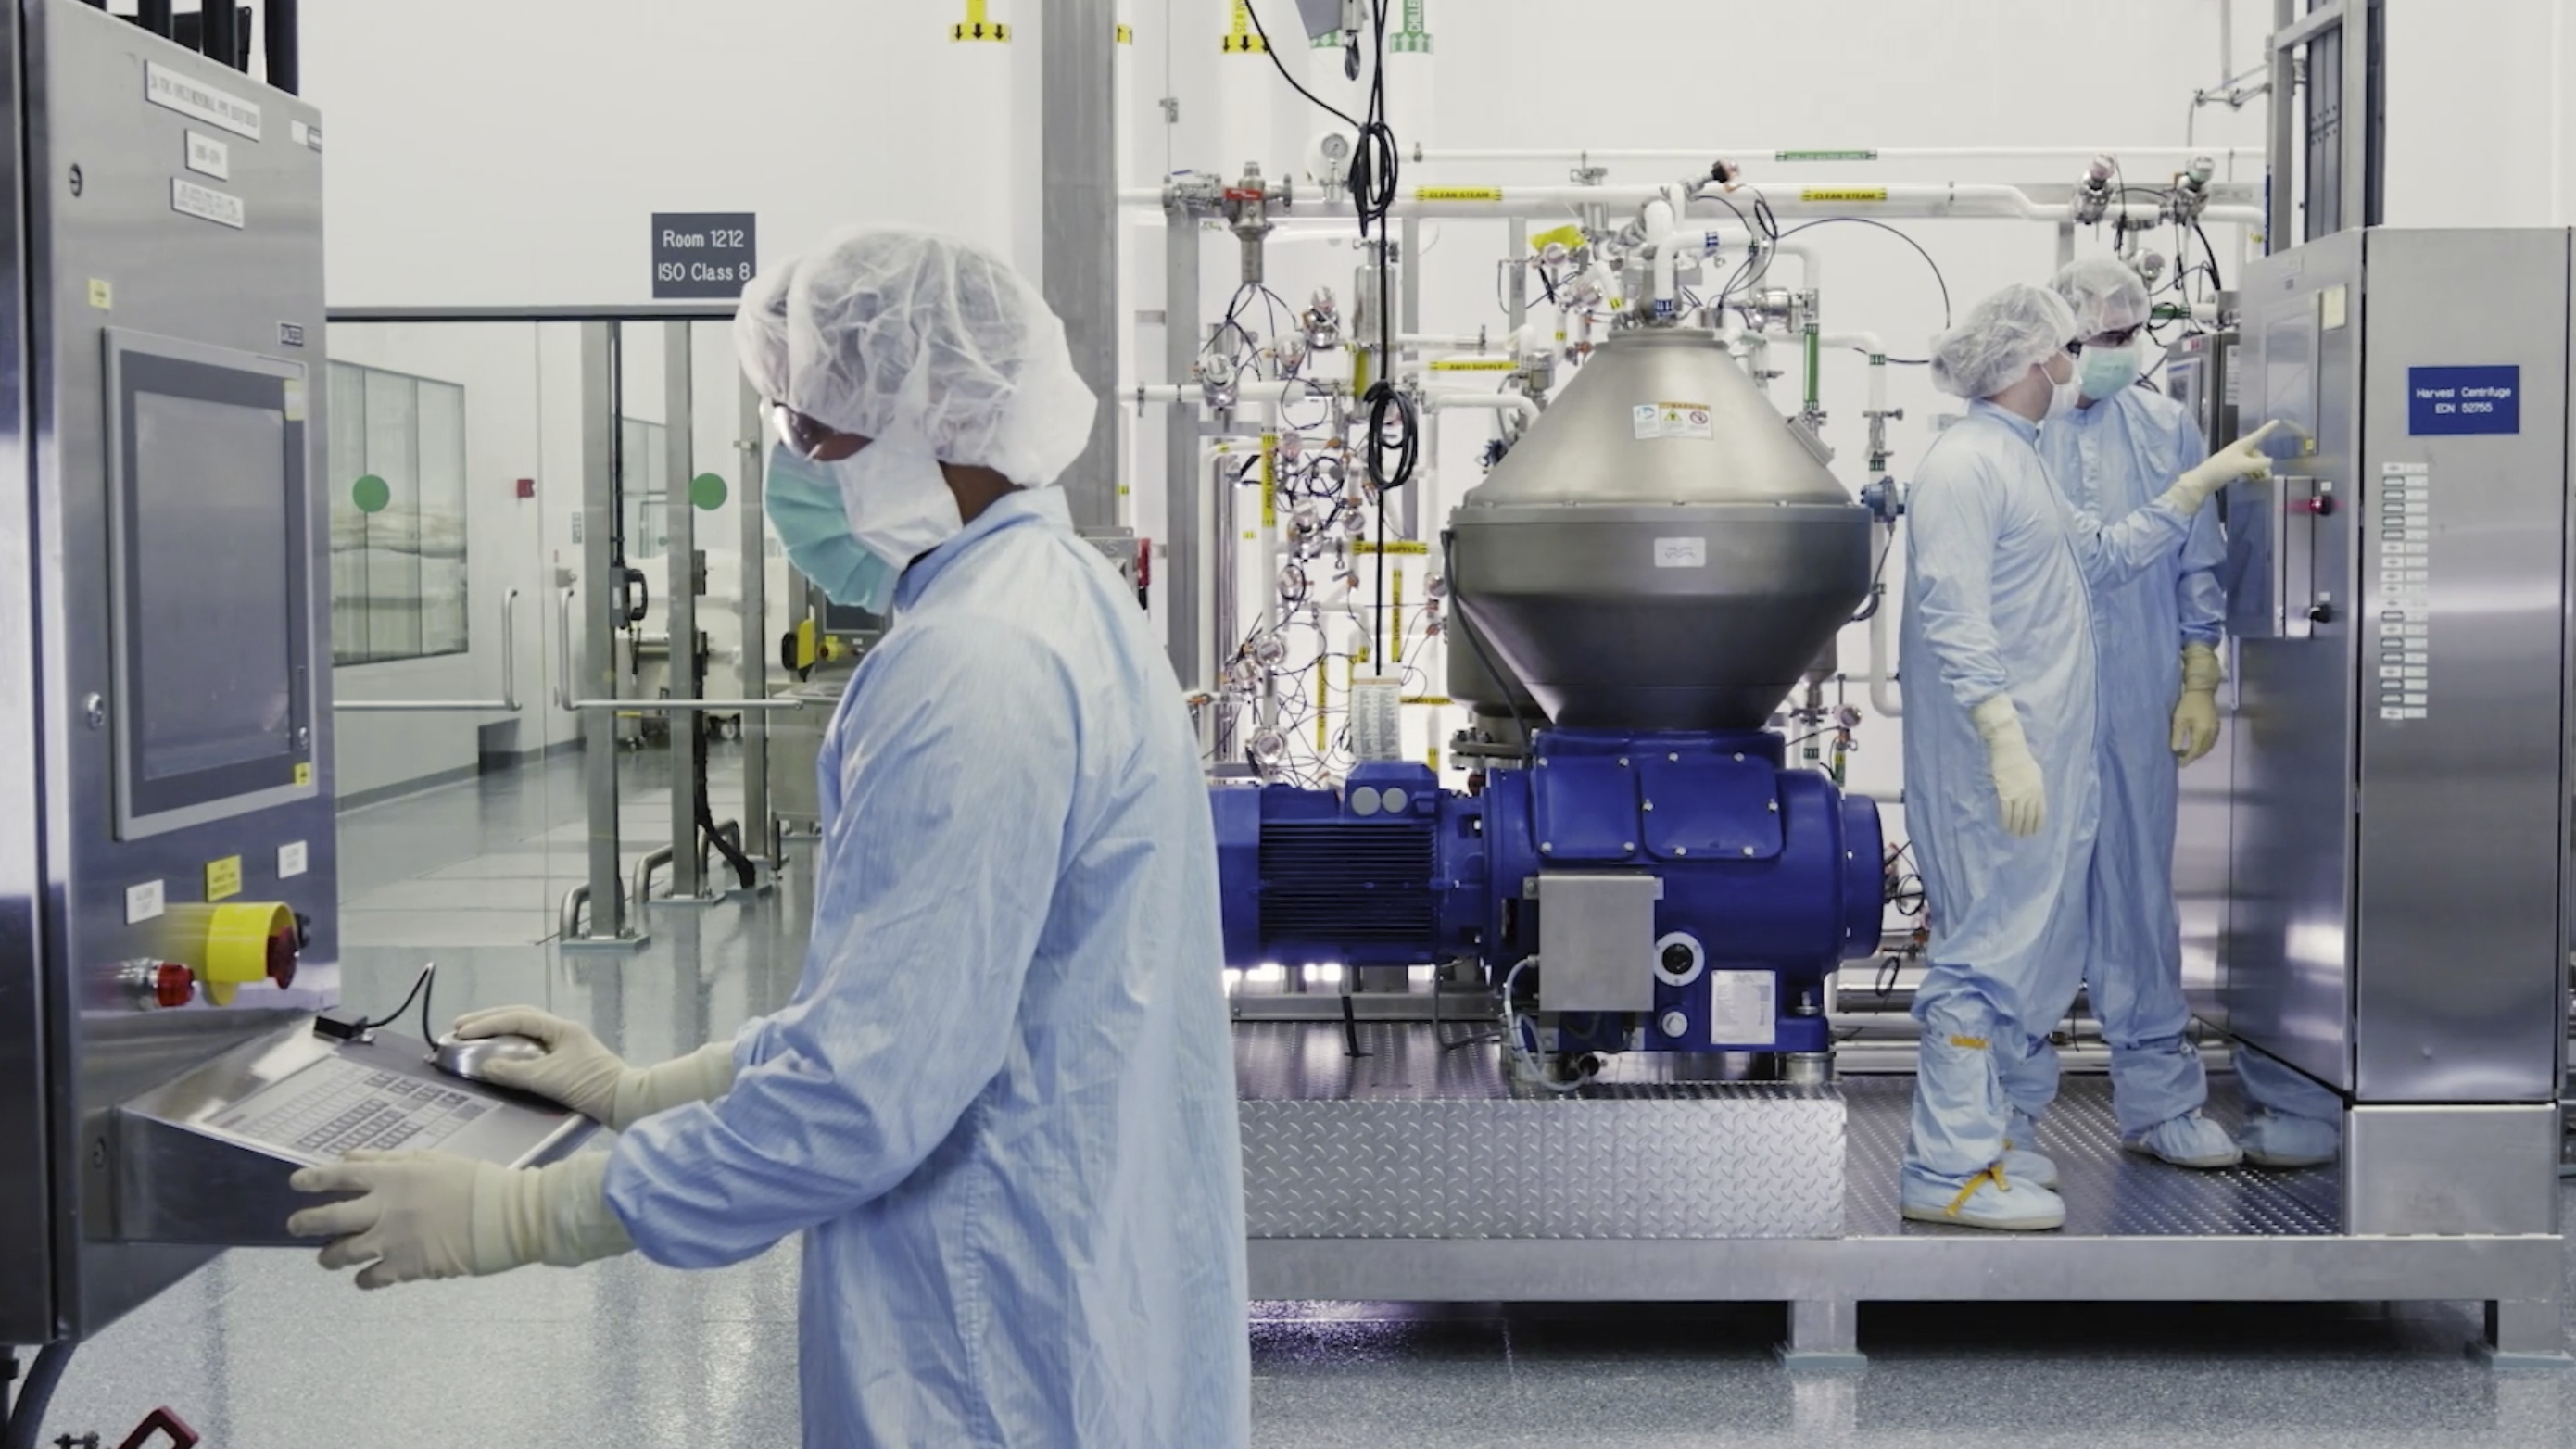 Scientists work with a bioreactor at a company facility in New York state for efforts on an experimental coronavirus antibody drug on Oct. 2, 2020.